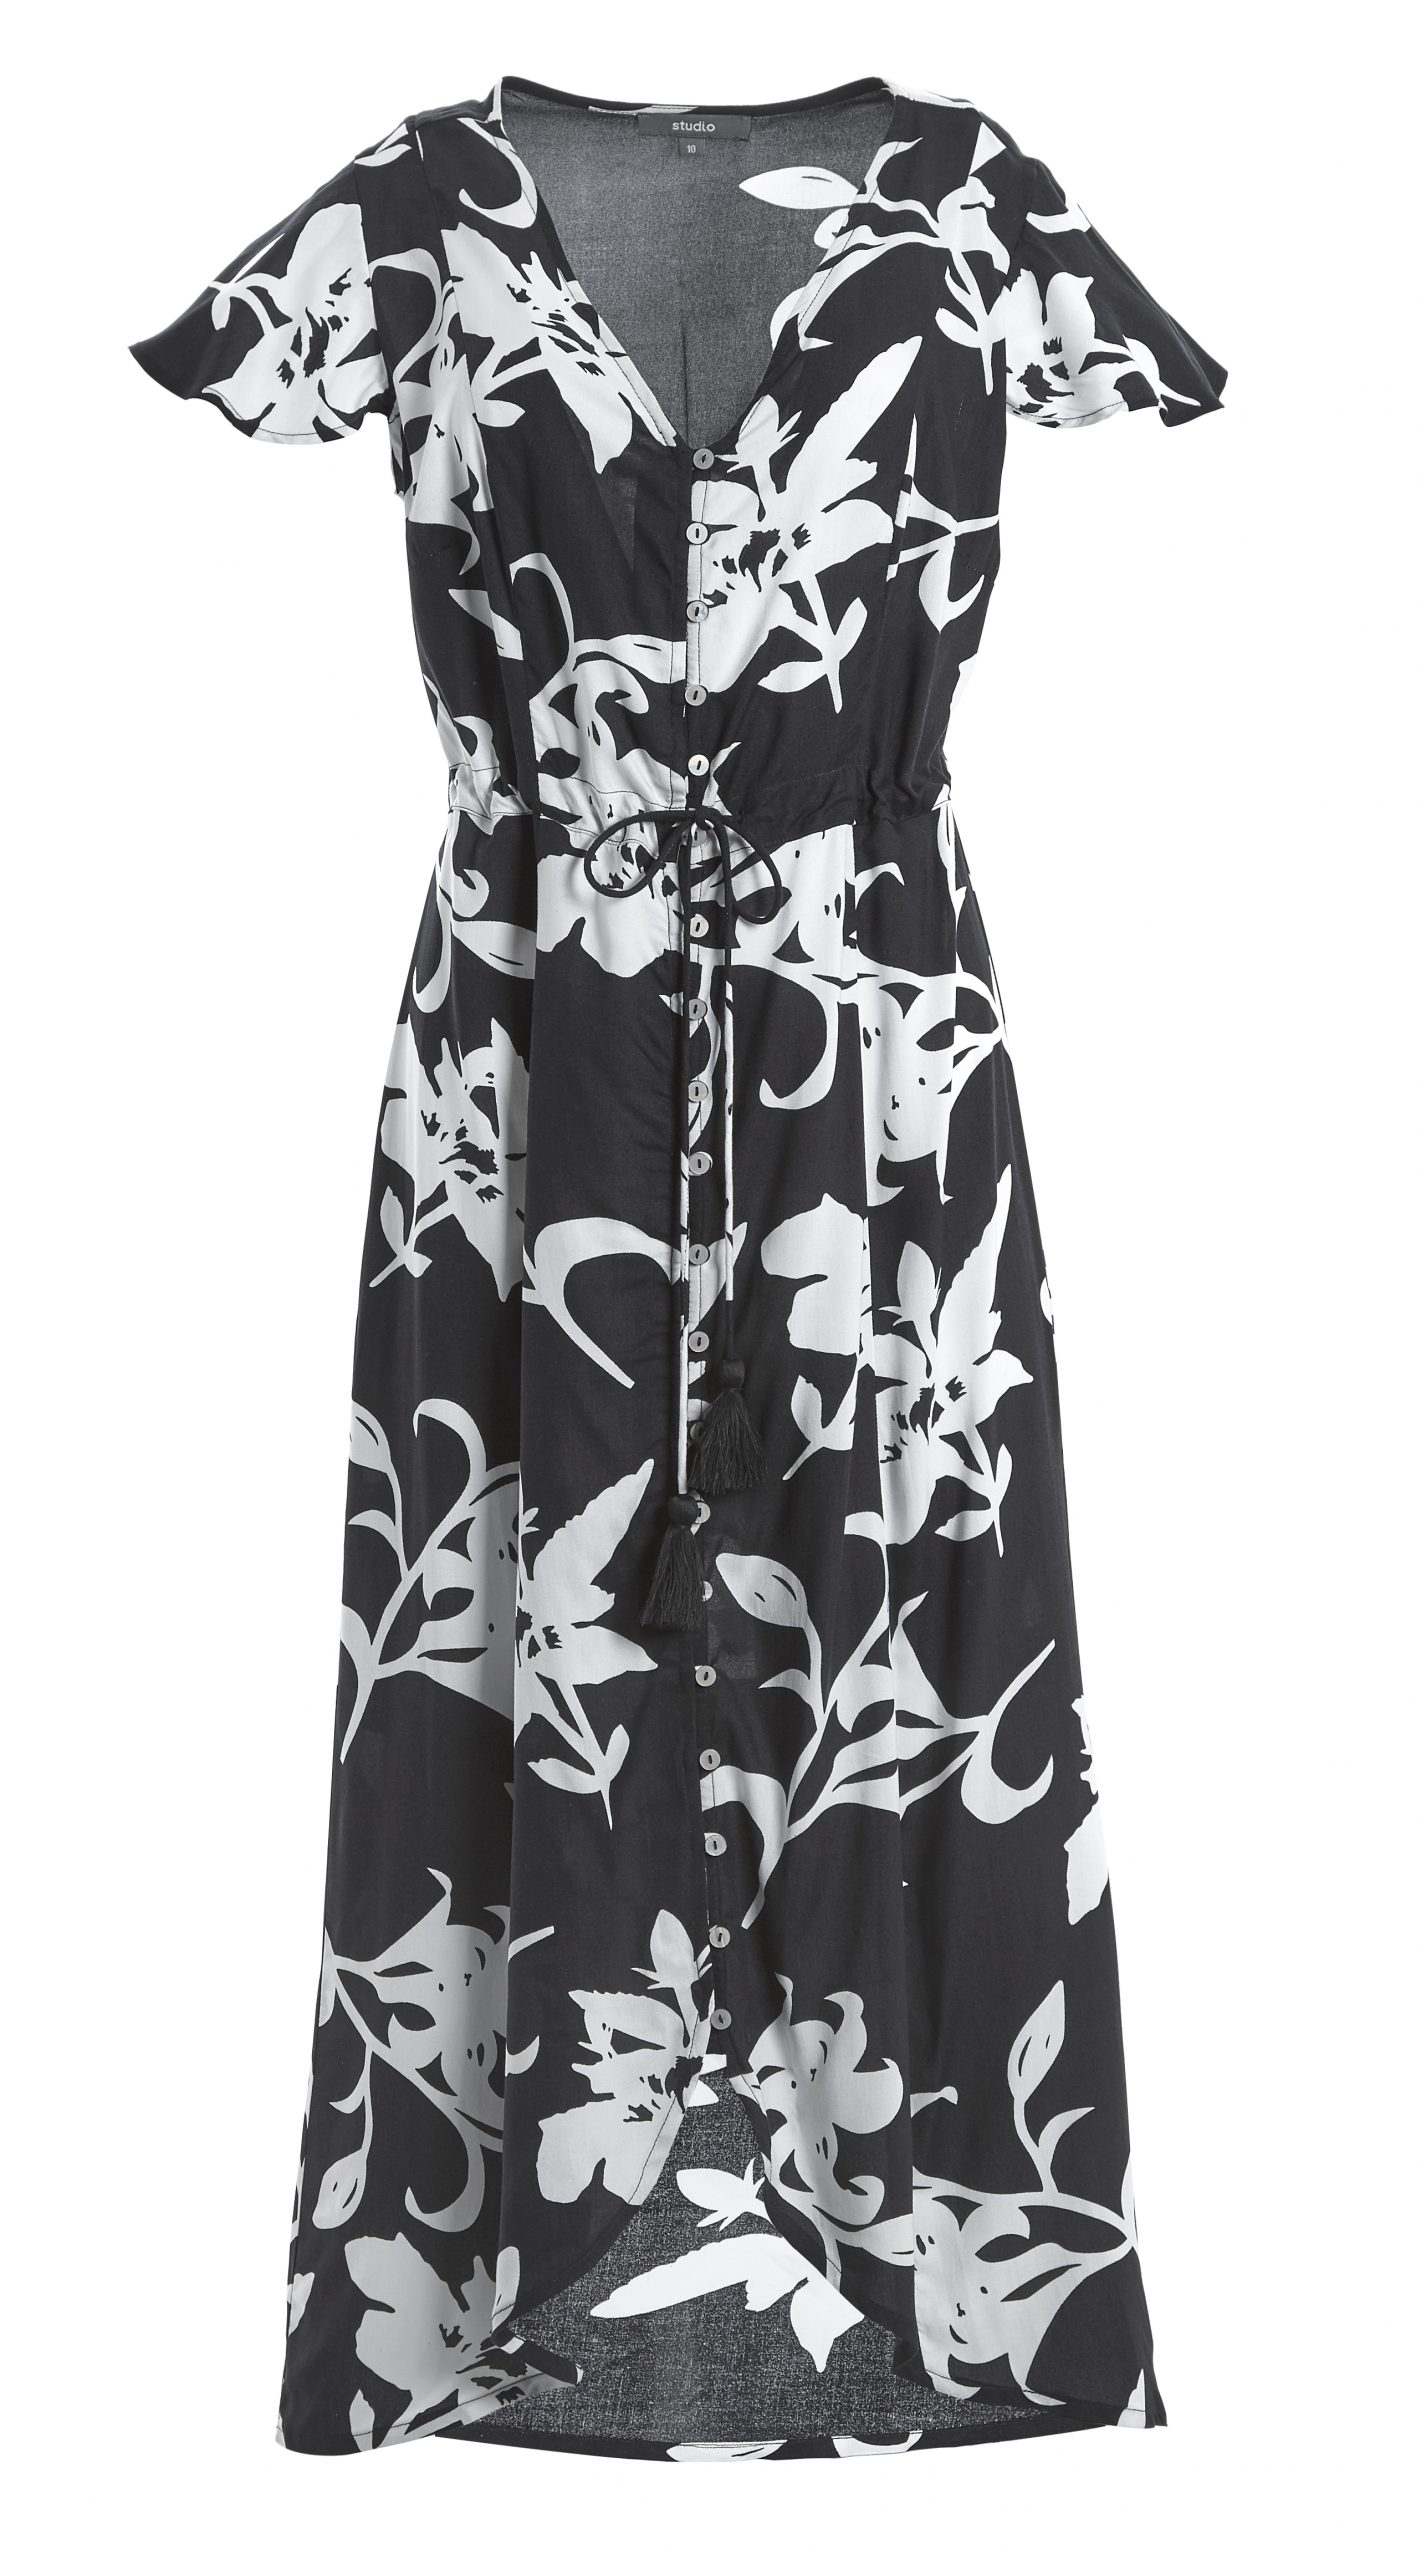 Studio Cap Sleeve Tea Dress Floral Black and White £15